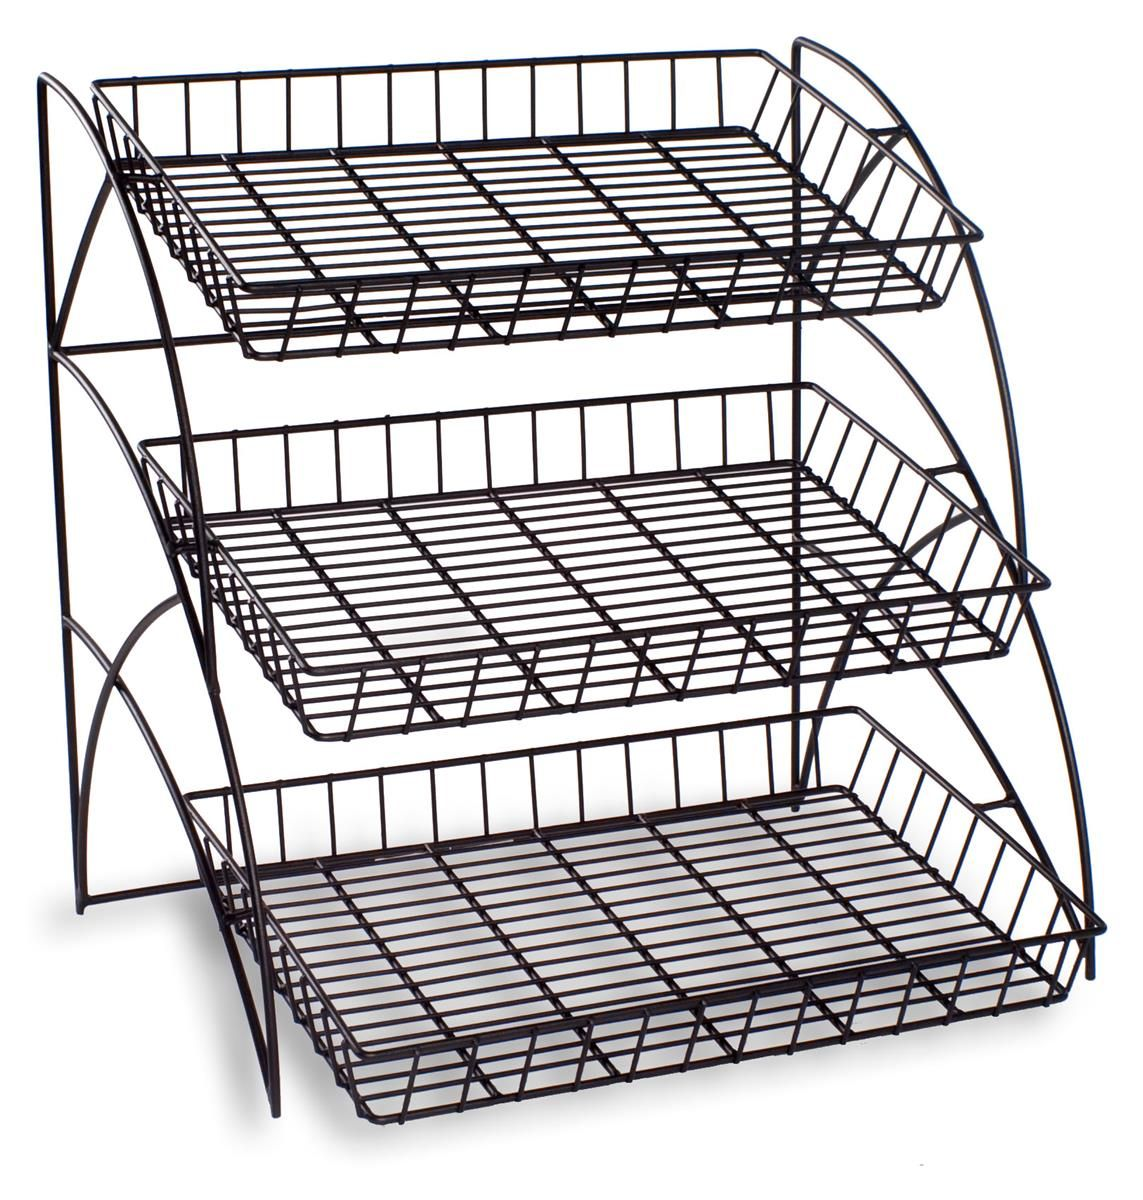 Wire Rack with 3 Tiers for Tabletop, Open Shelving with Rectangular ...